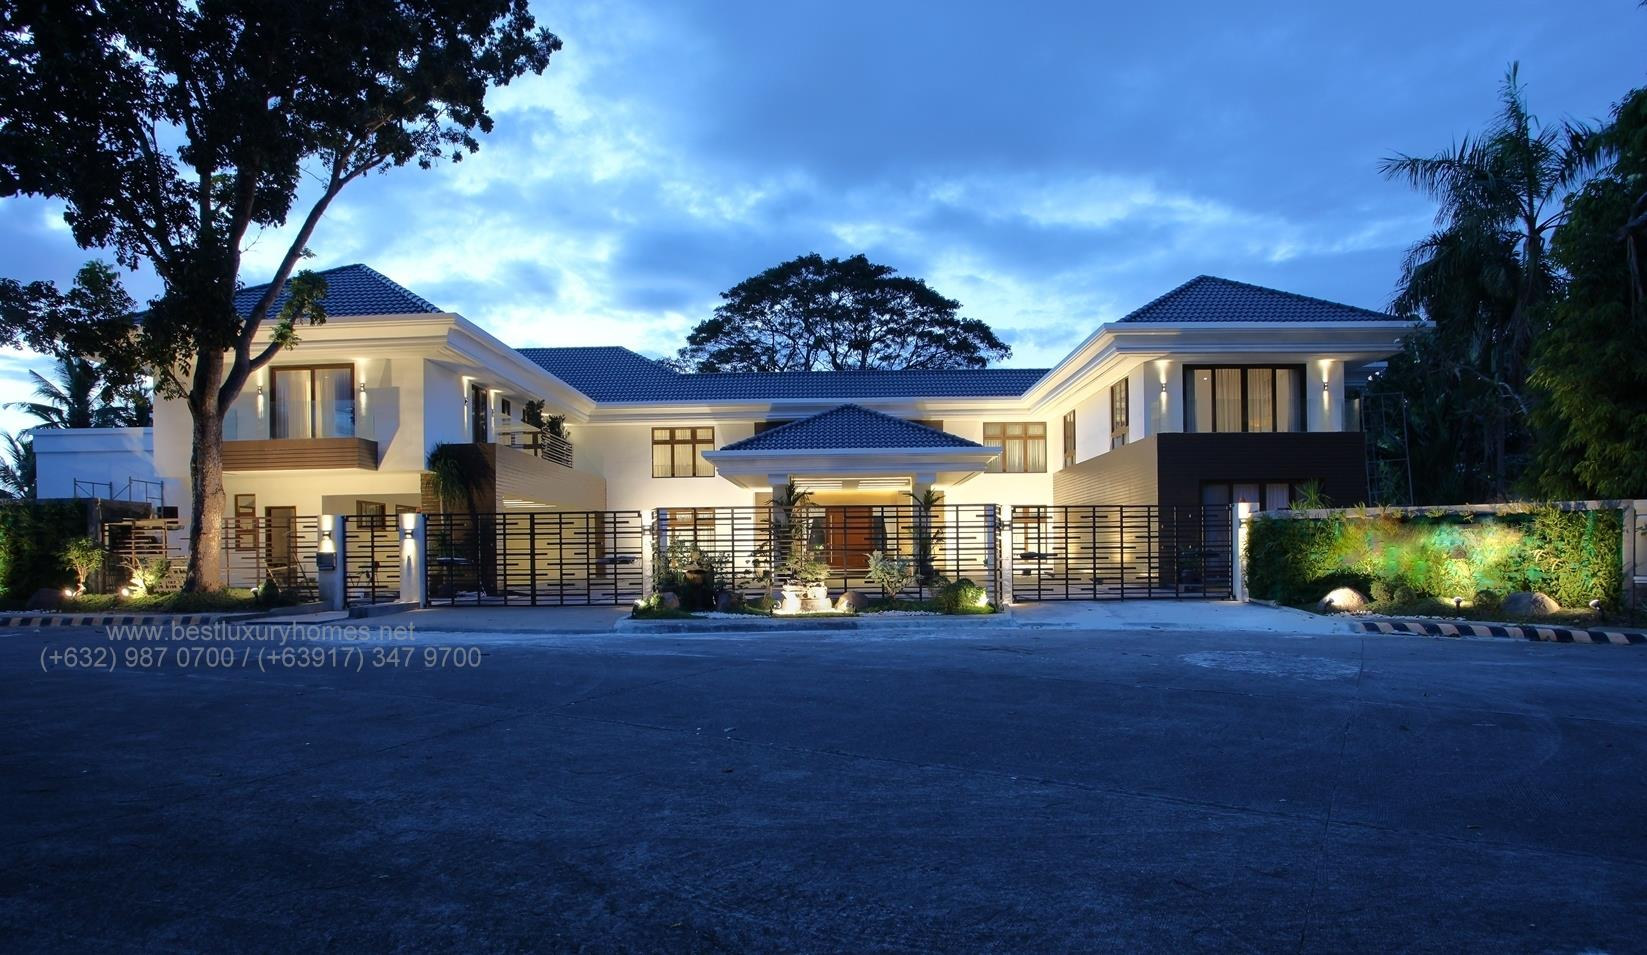 Mansion Philippines For Sale